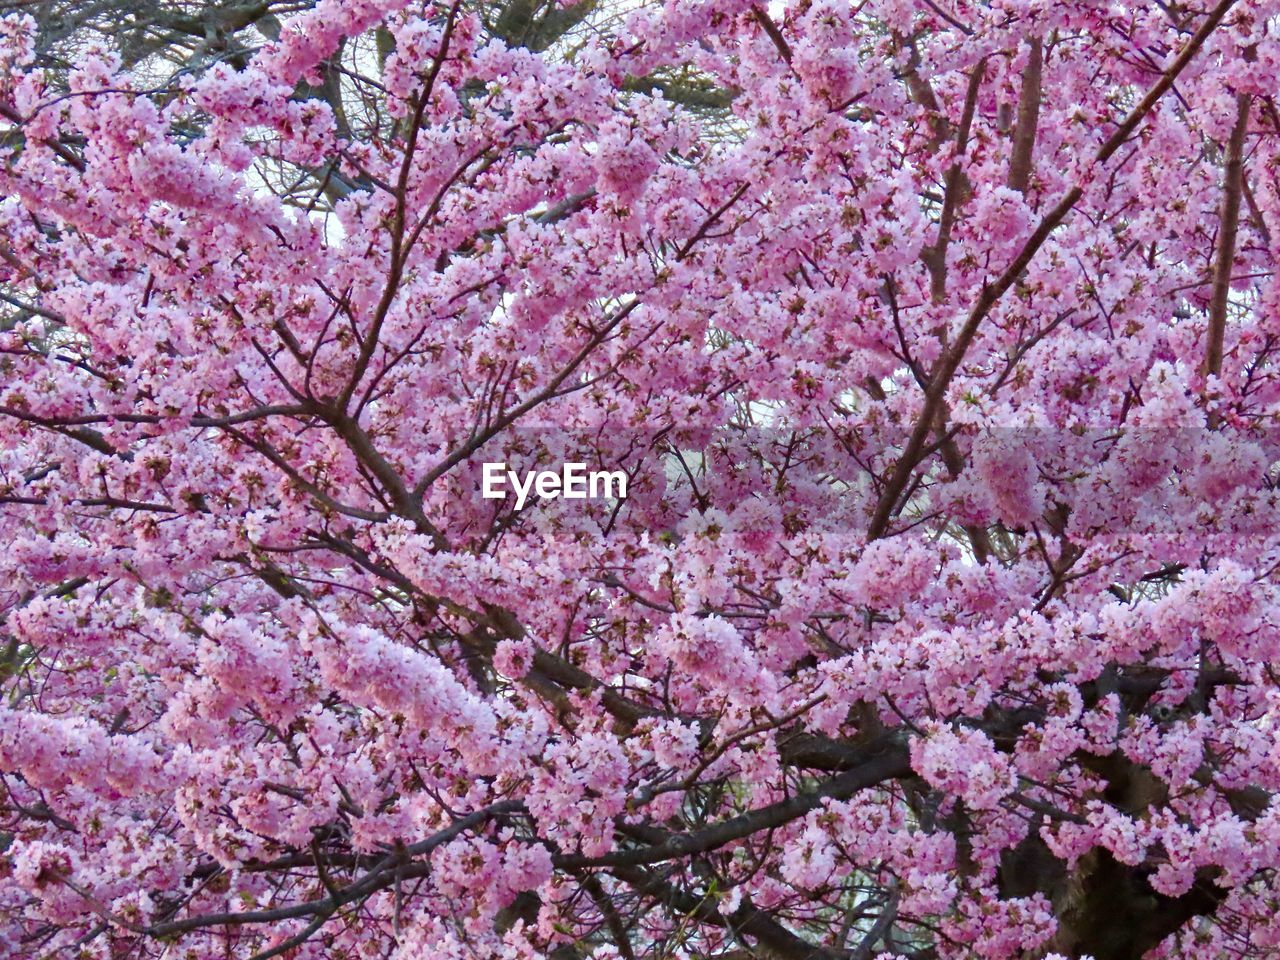 flowering plant, flower, pink color, plant, fragility, beauty in nature, blossom, growth, freshness, springtime, tree, cherry blossom, vulnerability, branch, nature, cherry tree, day, no people, botany, close-up, outdoors, flower head, bunch of flowers, spring